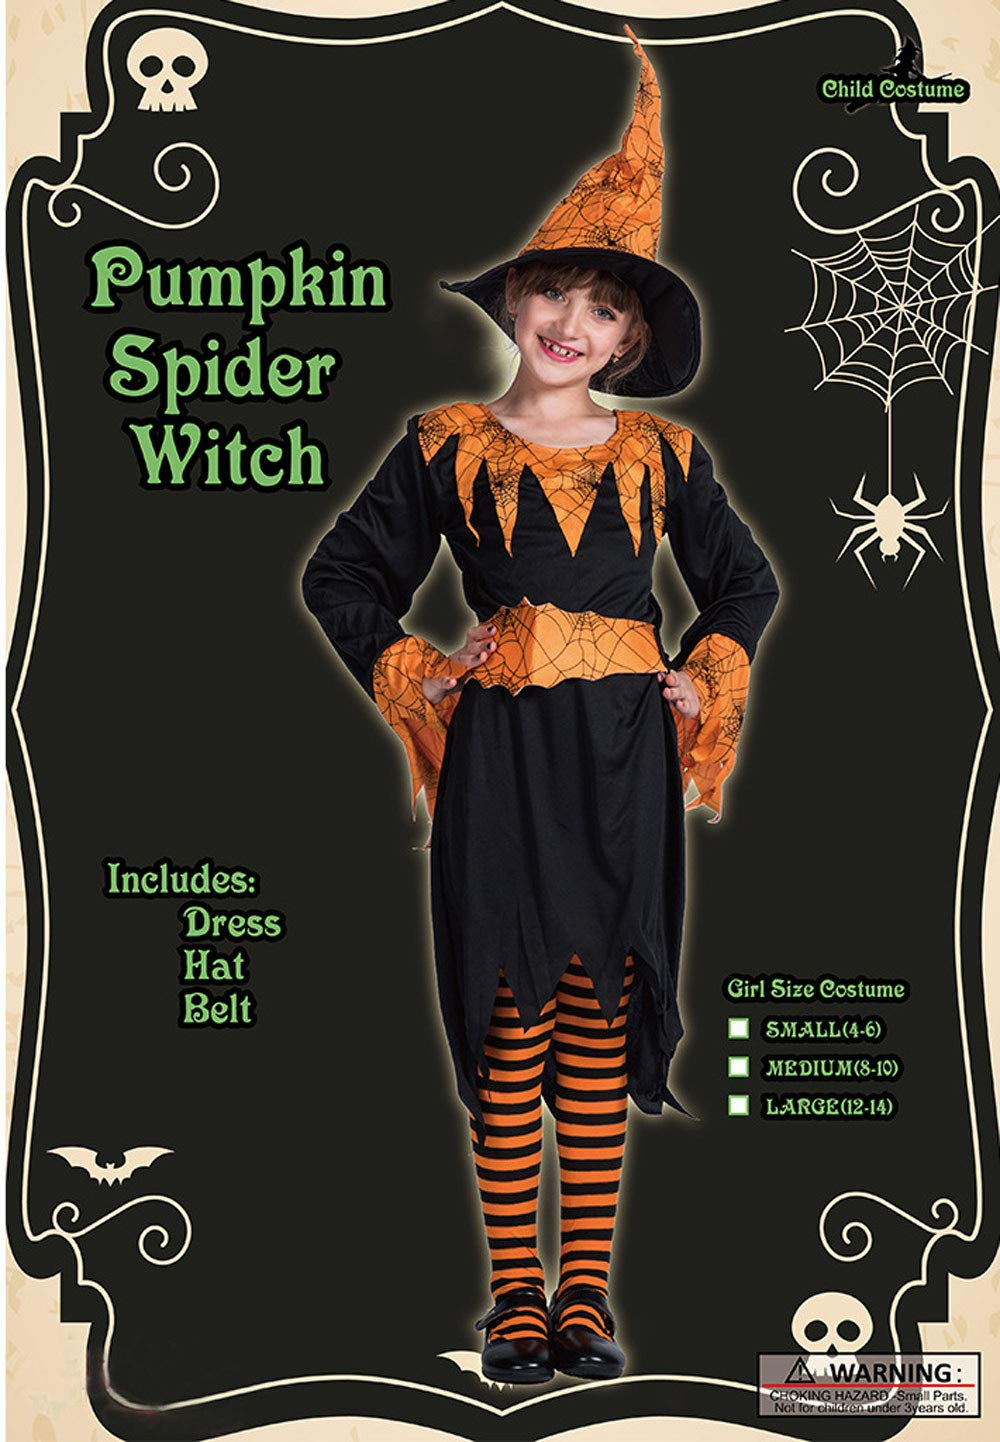 Little Girls Long Sleeve Halloween Pumpkin Witch Dress Up Set Cosplay Outfit L for 12-14 Y by Eraspooky (Image #7)